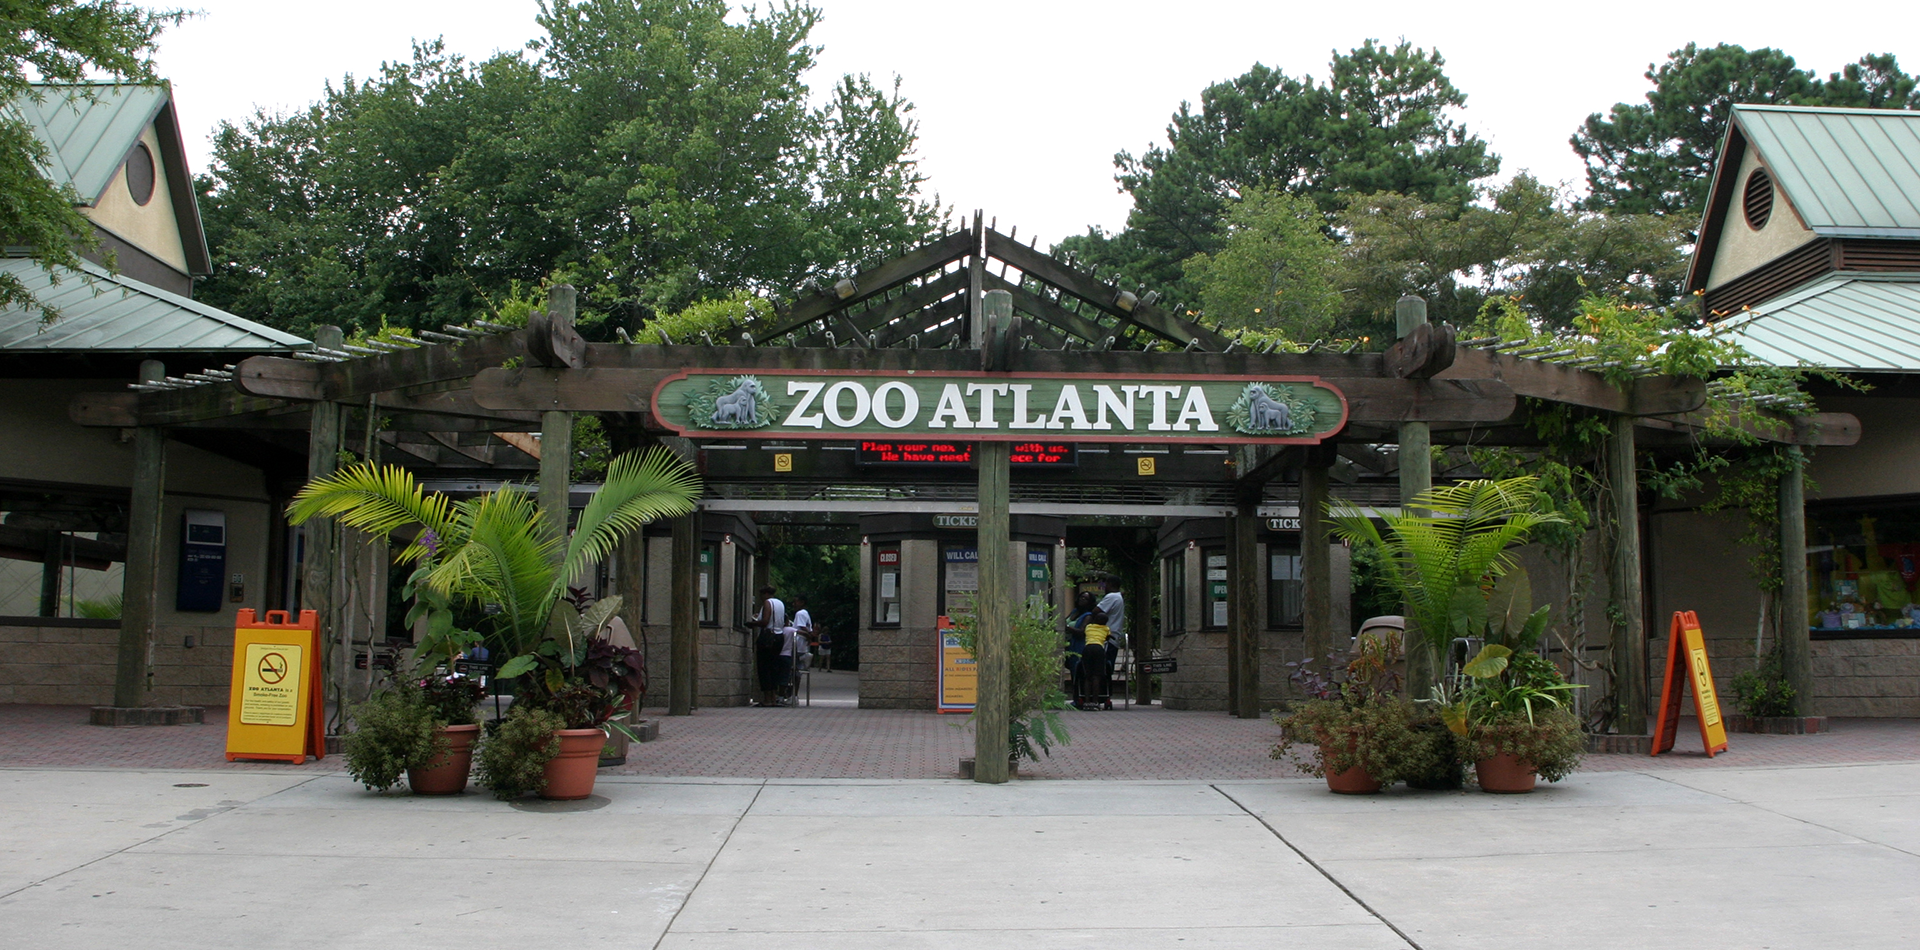 Zoo Atlanta Parking Guide 2021 How To Save Money